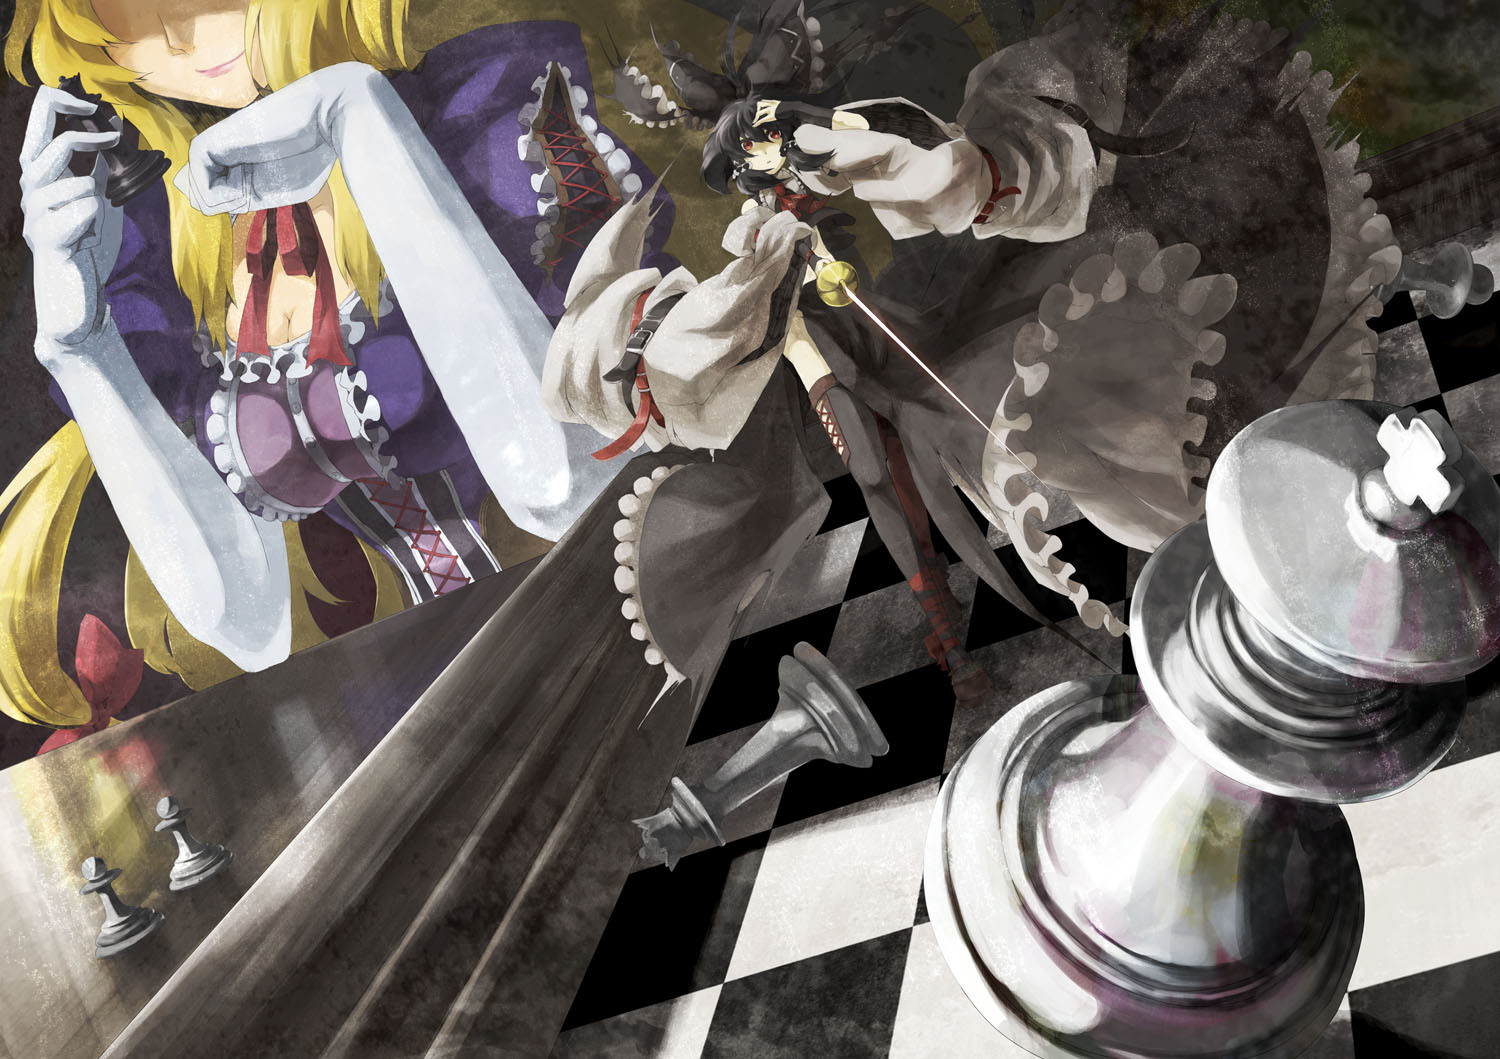 brunettes_blondes_touhou_gloves_chess_long_hair_ribbons_desktop_1500x1059_hd-wallpaper-708918